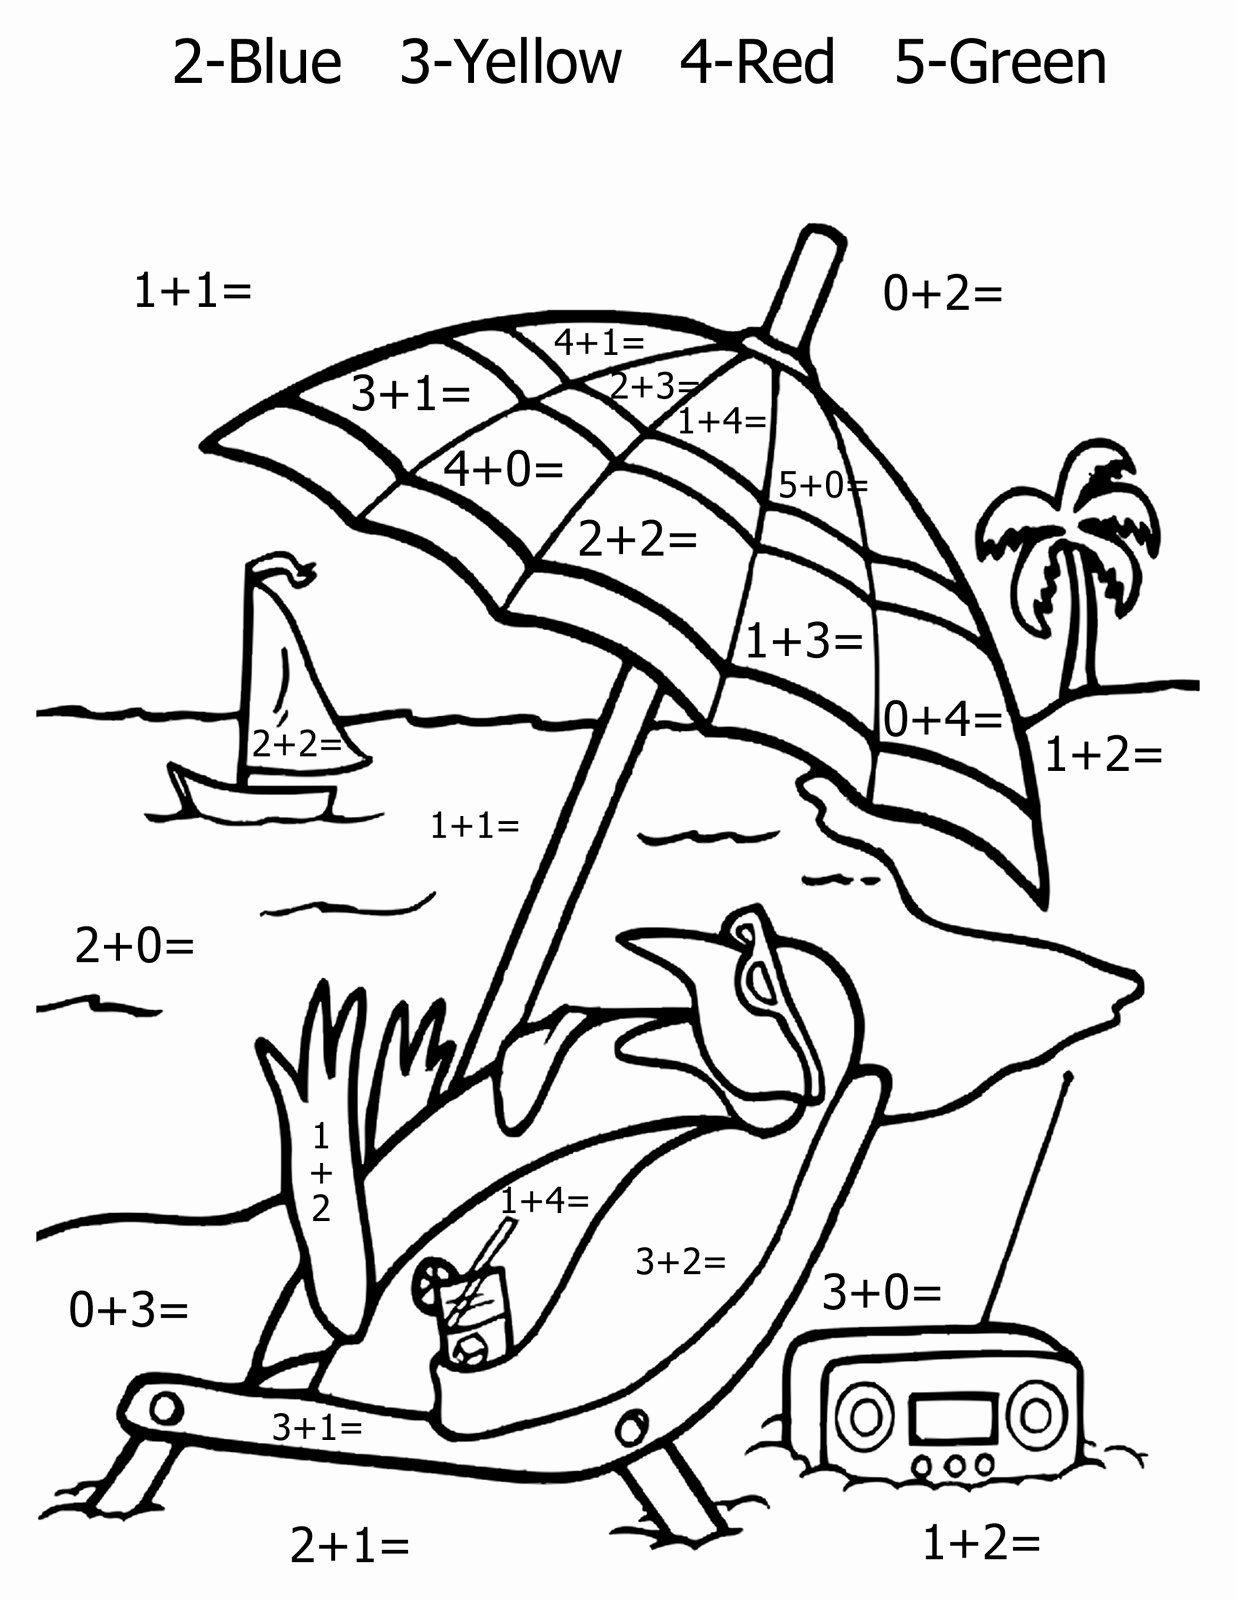 Coloring Addition Worksheet Beautiful Free Printable Math Coloring Pages for Kids Best